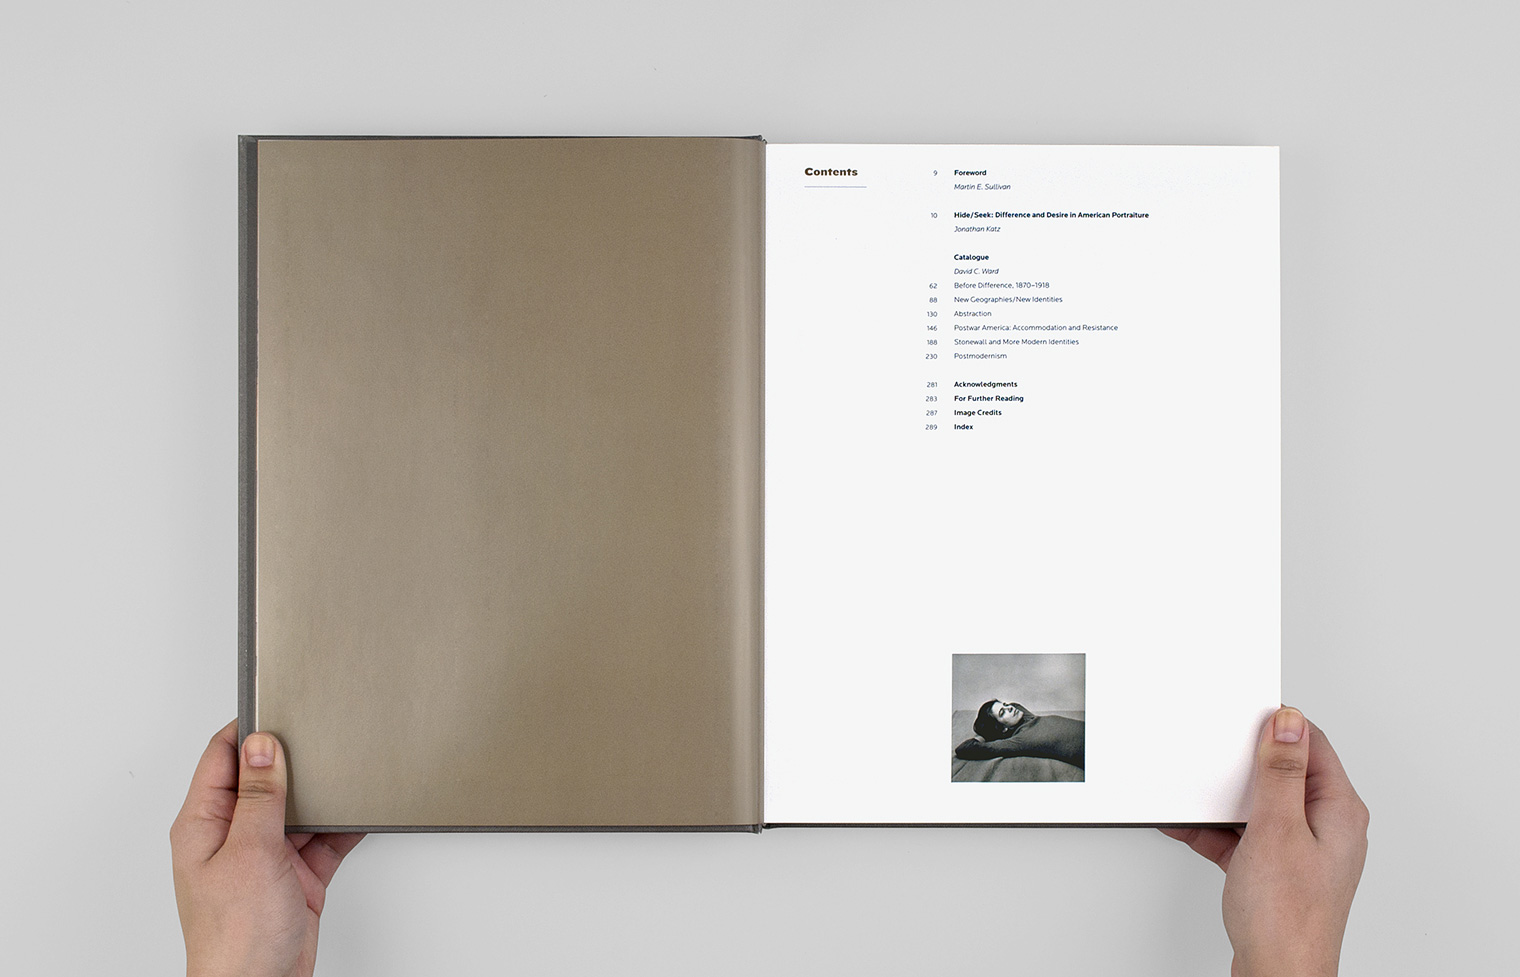 The table of contents page is embellished with a small portrait of Susan Sontag by Peter Hujar.